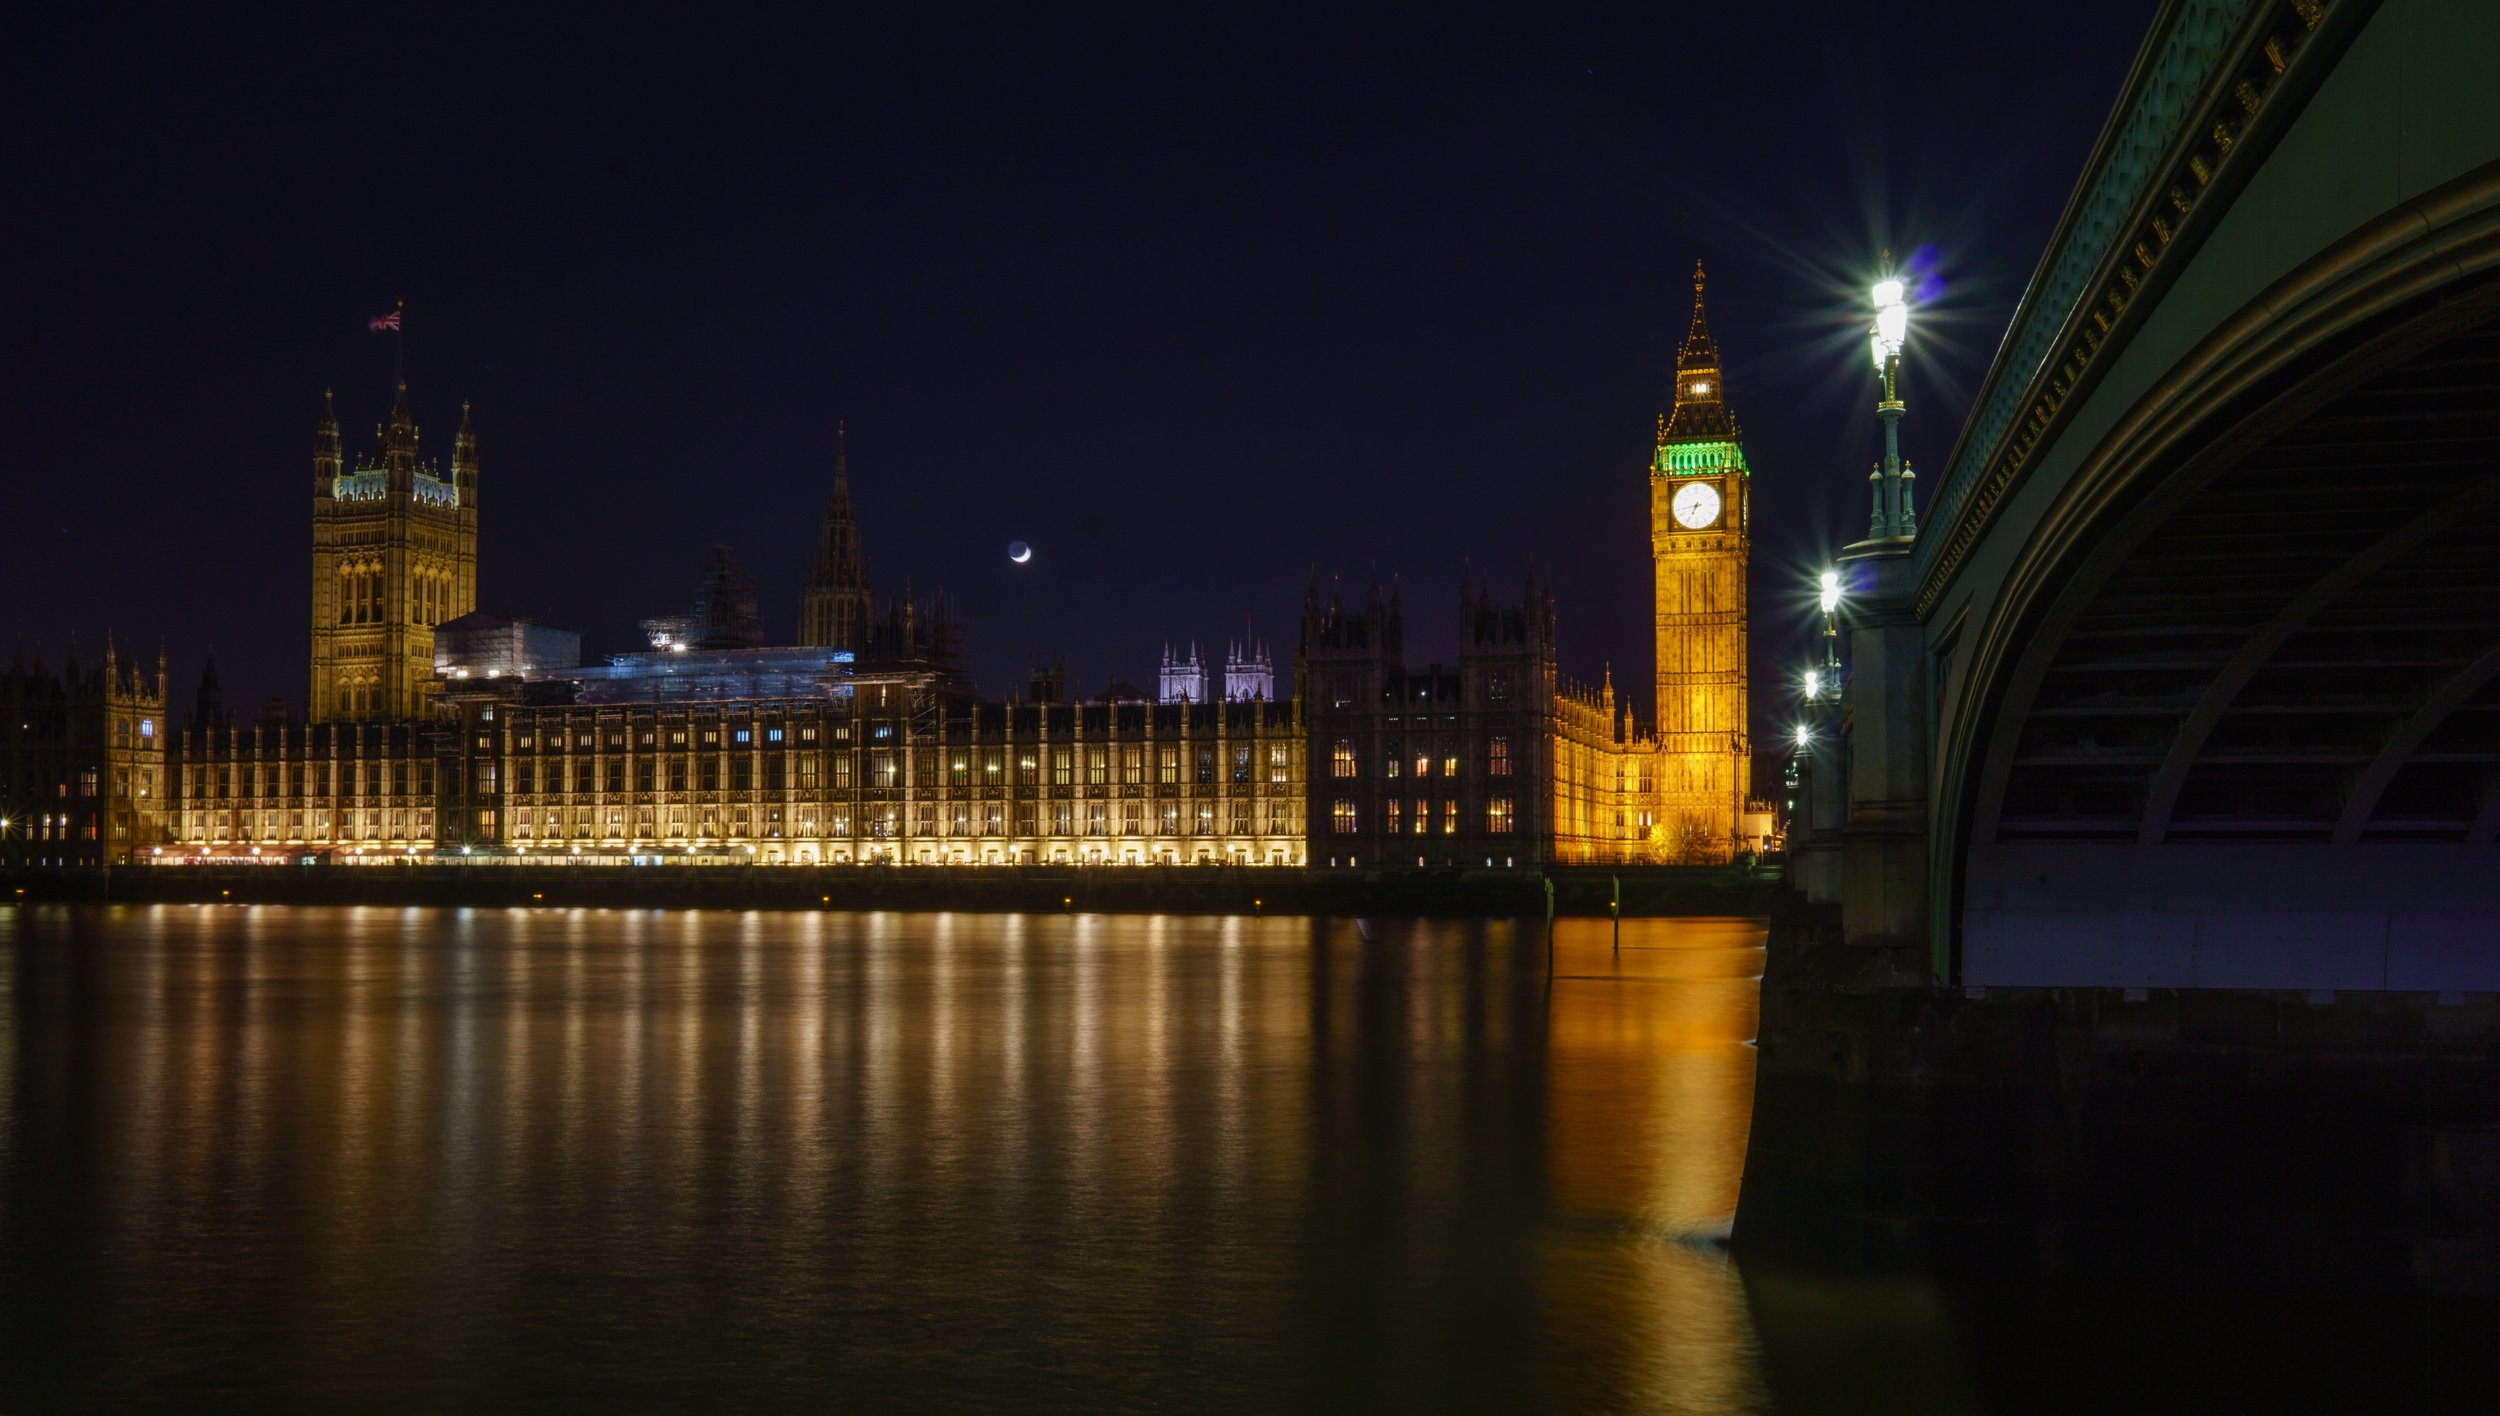 architecture-big-ben-bridge-1581694.jpg